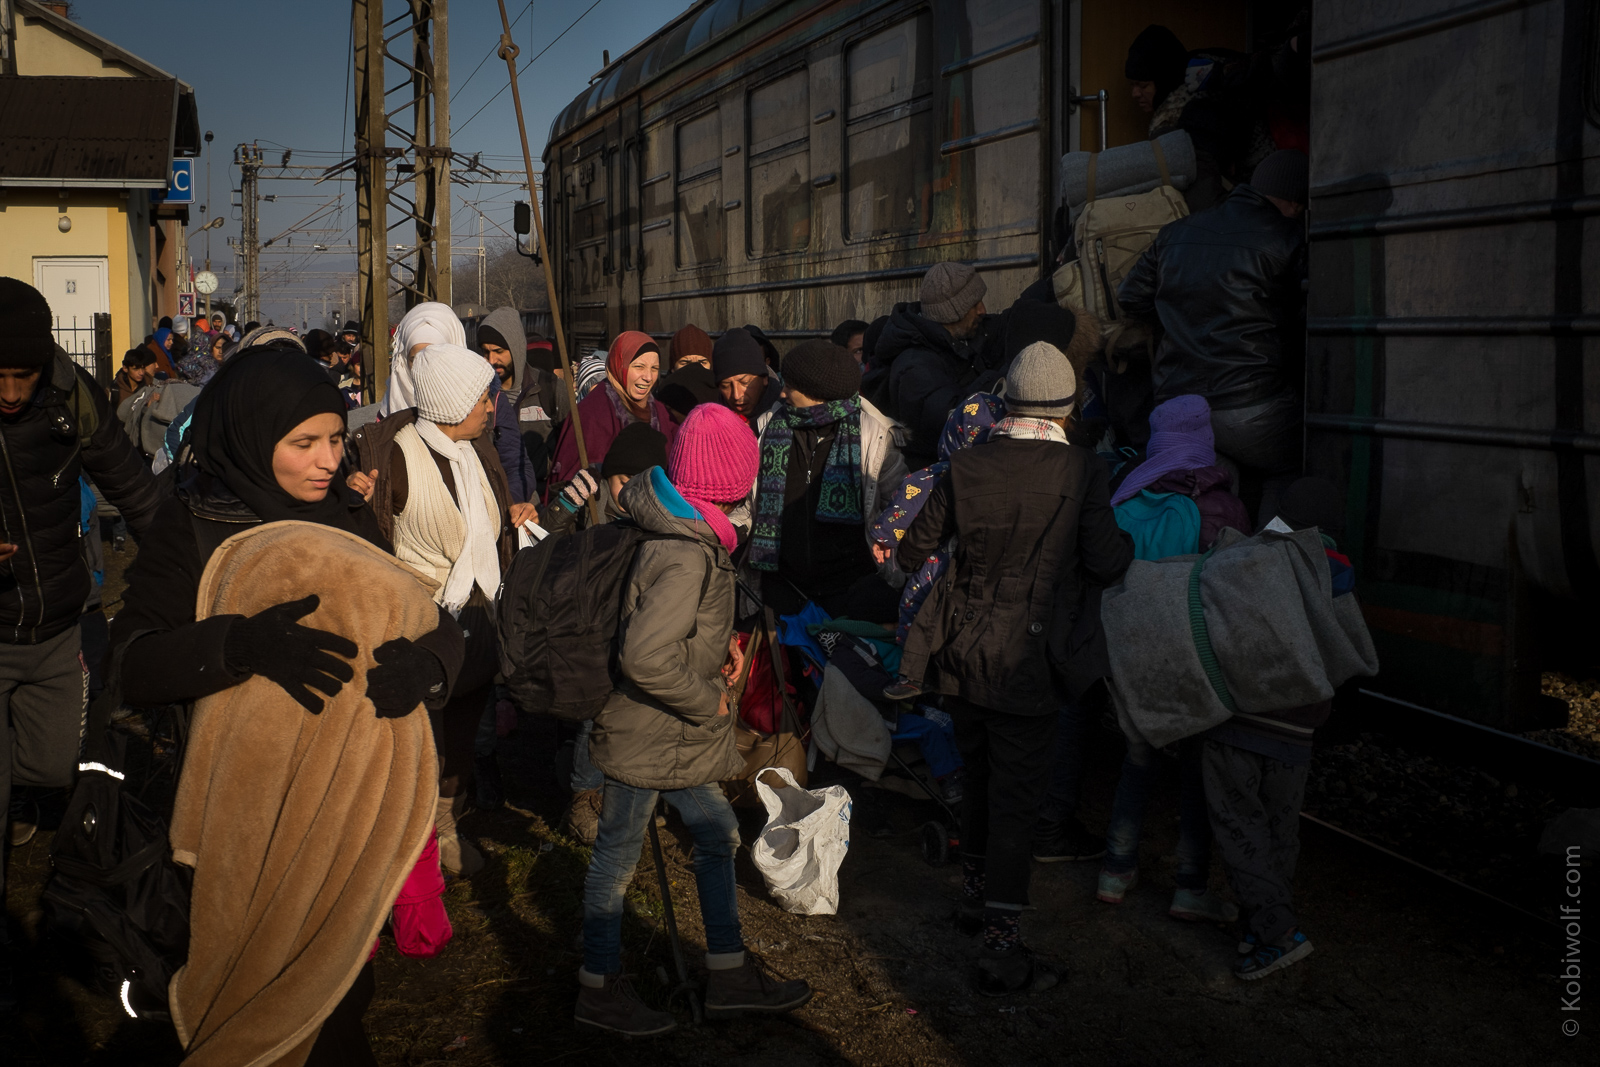 Refugee gets the train to Sid on Serbia Croatia border